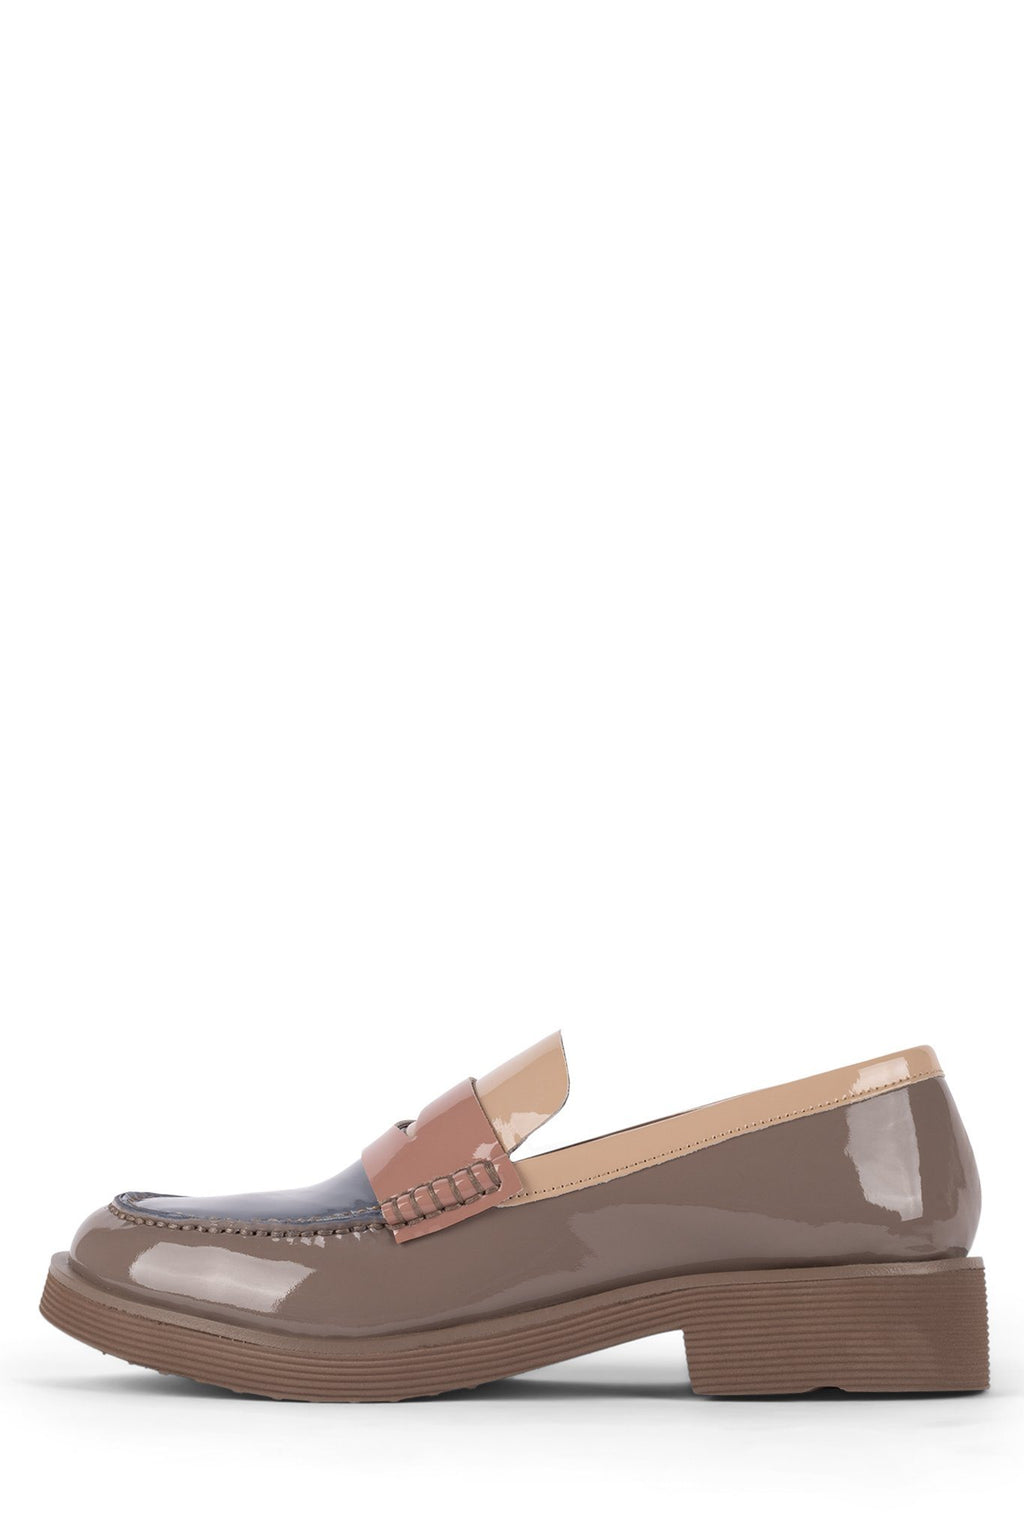 LENNA YYH Taupe Patent Multi 6